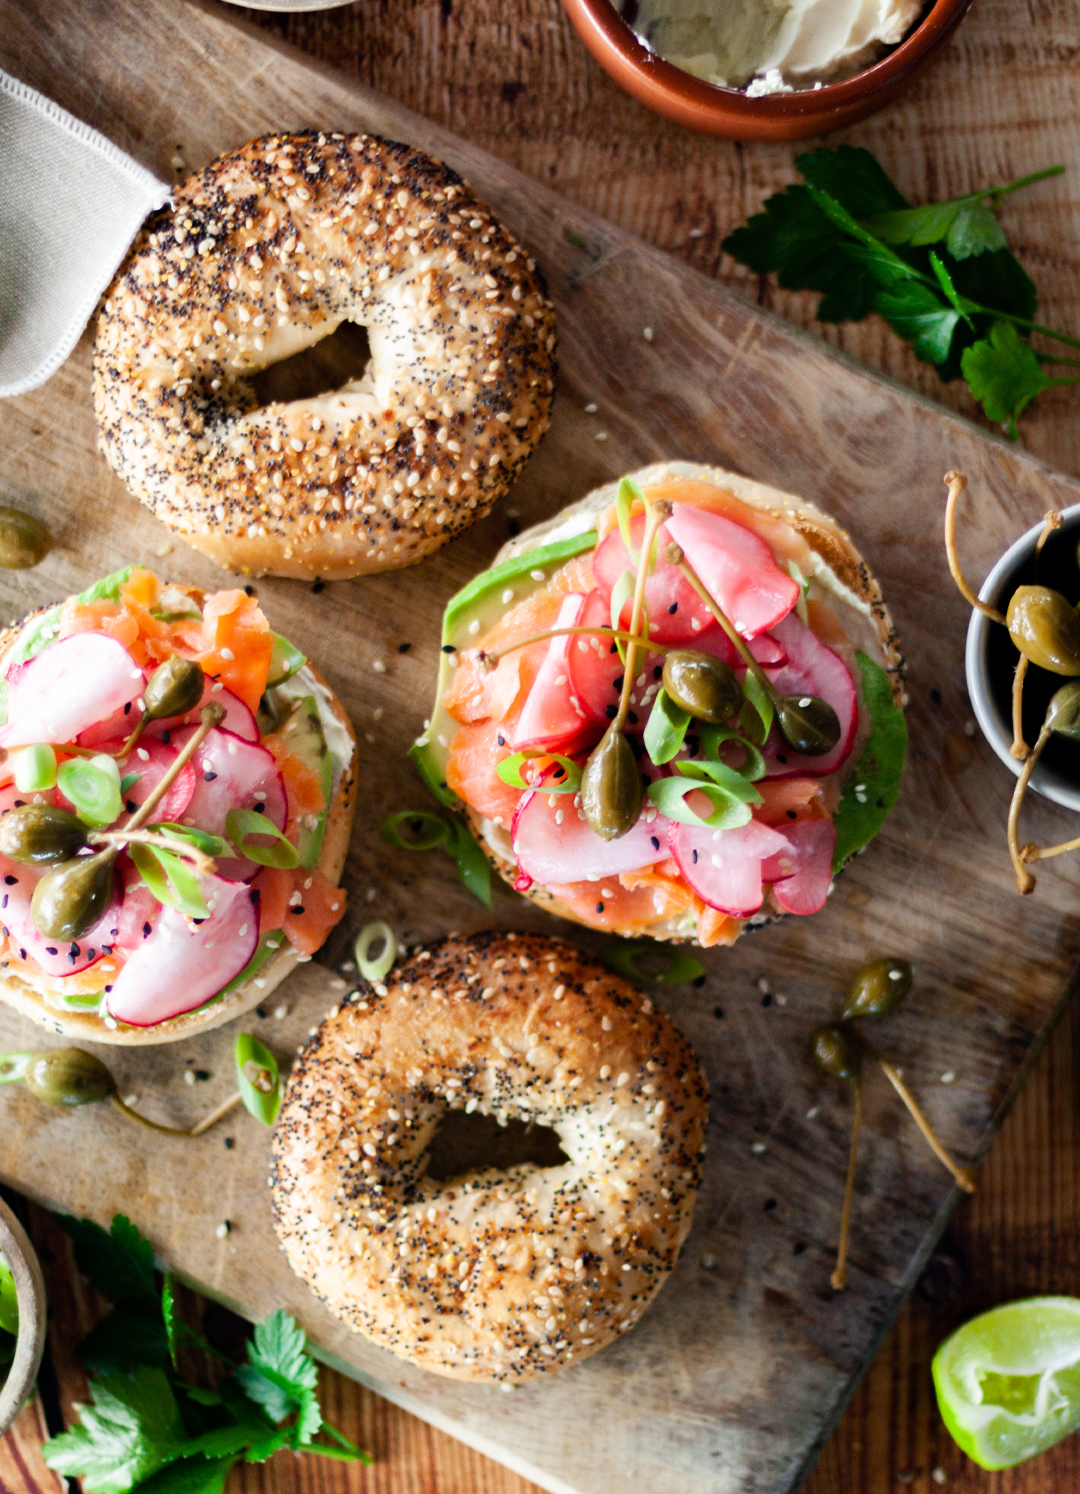 Bagel with smoked trout and wasabi cream cheese